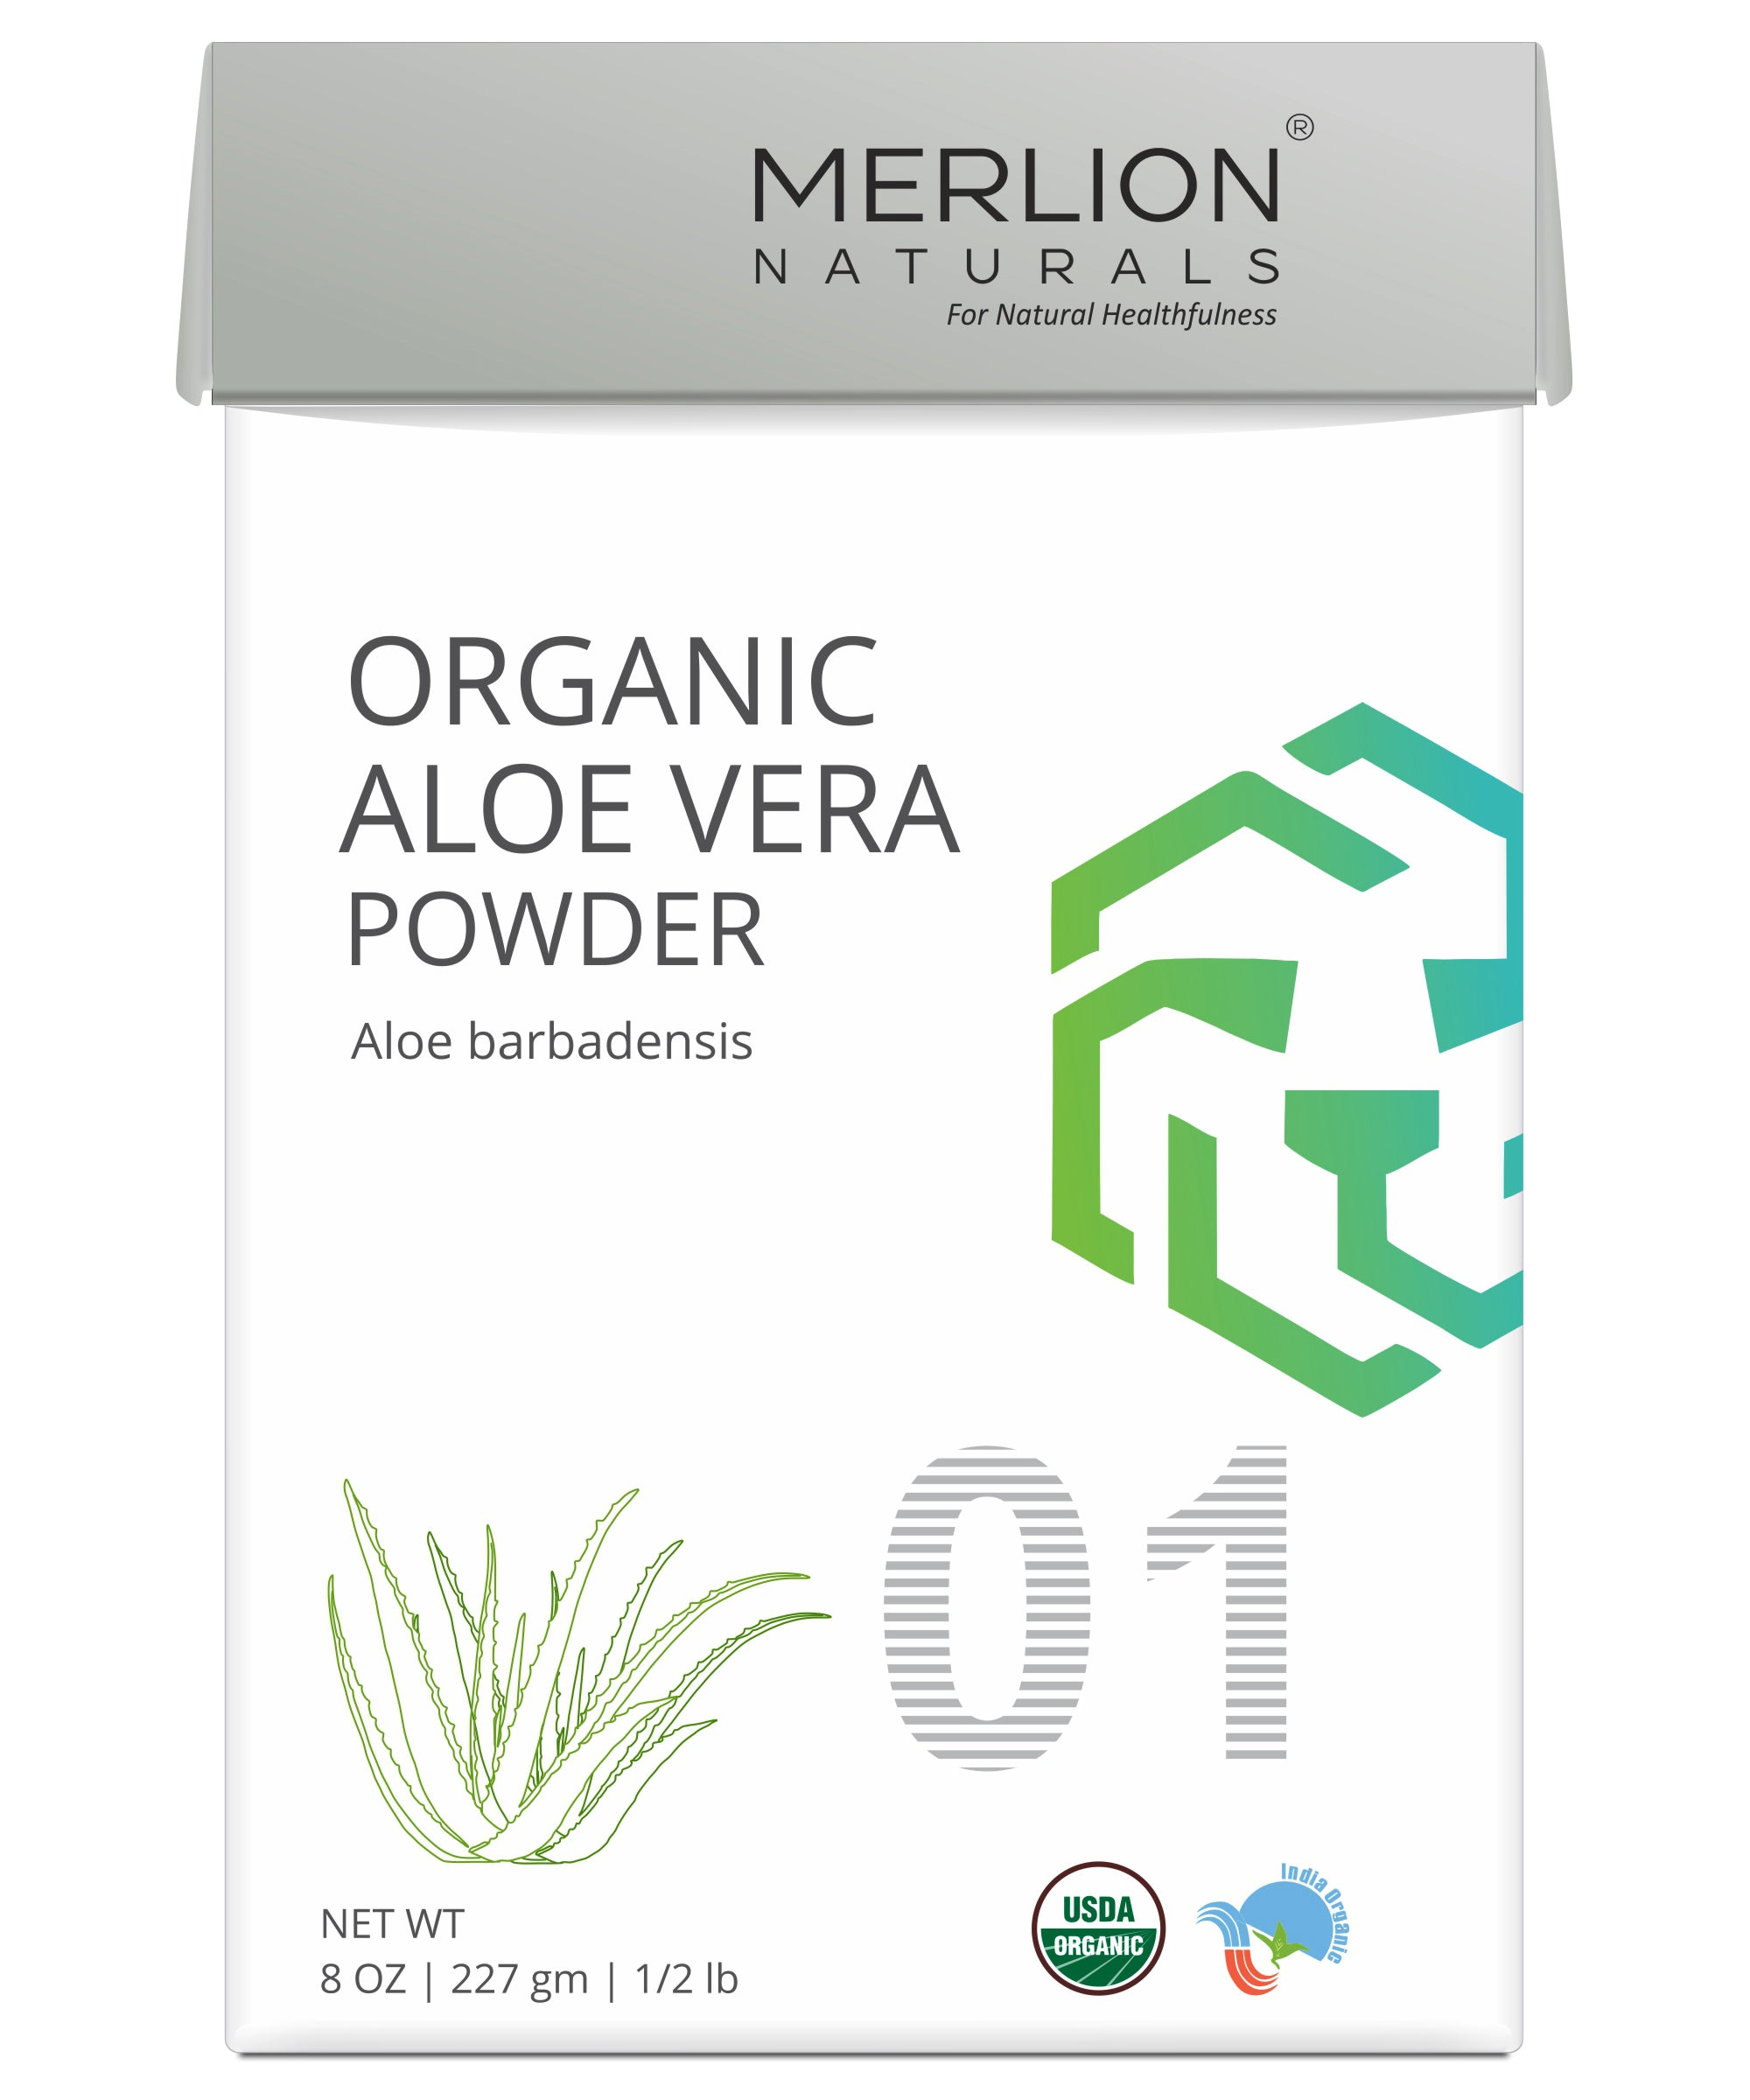 Organic Aloe Vera Powder | Aloe barbadensis